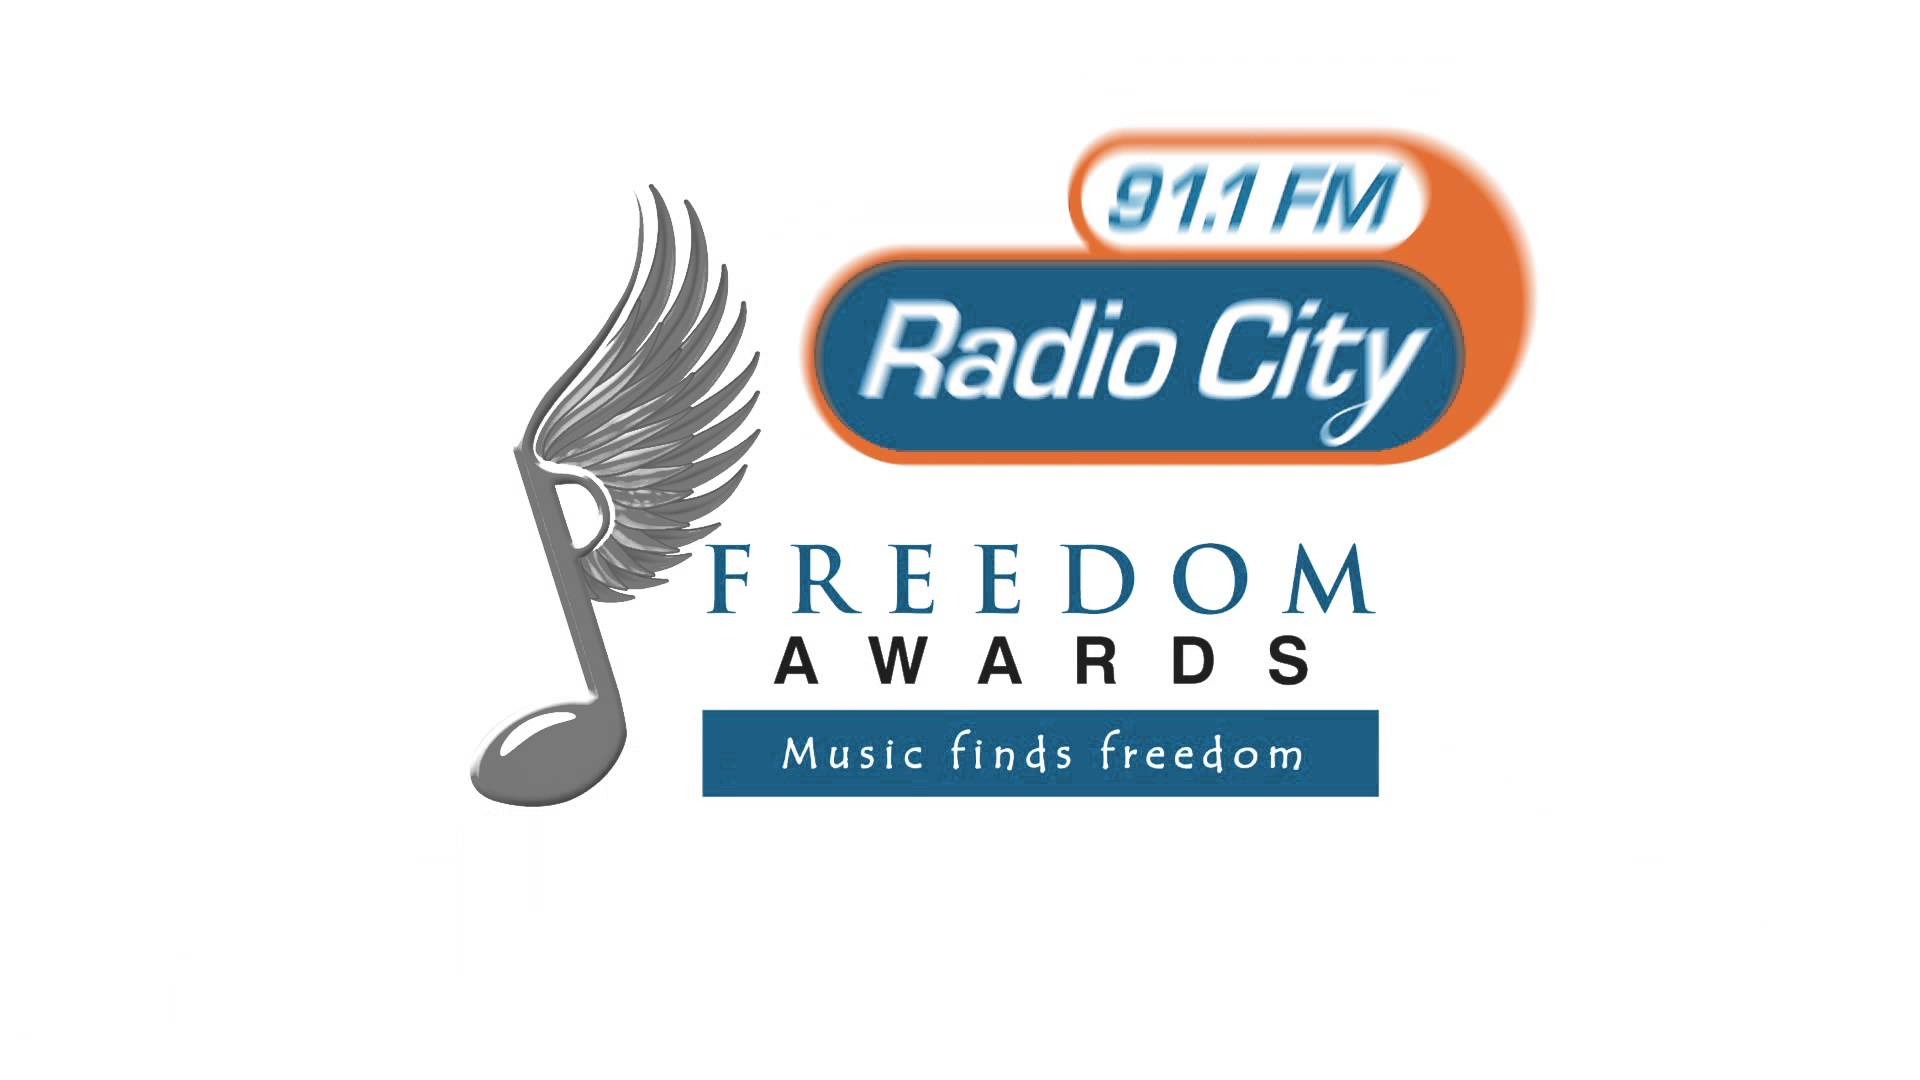 smokey radio city freedom awards